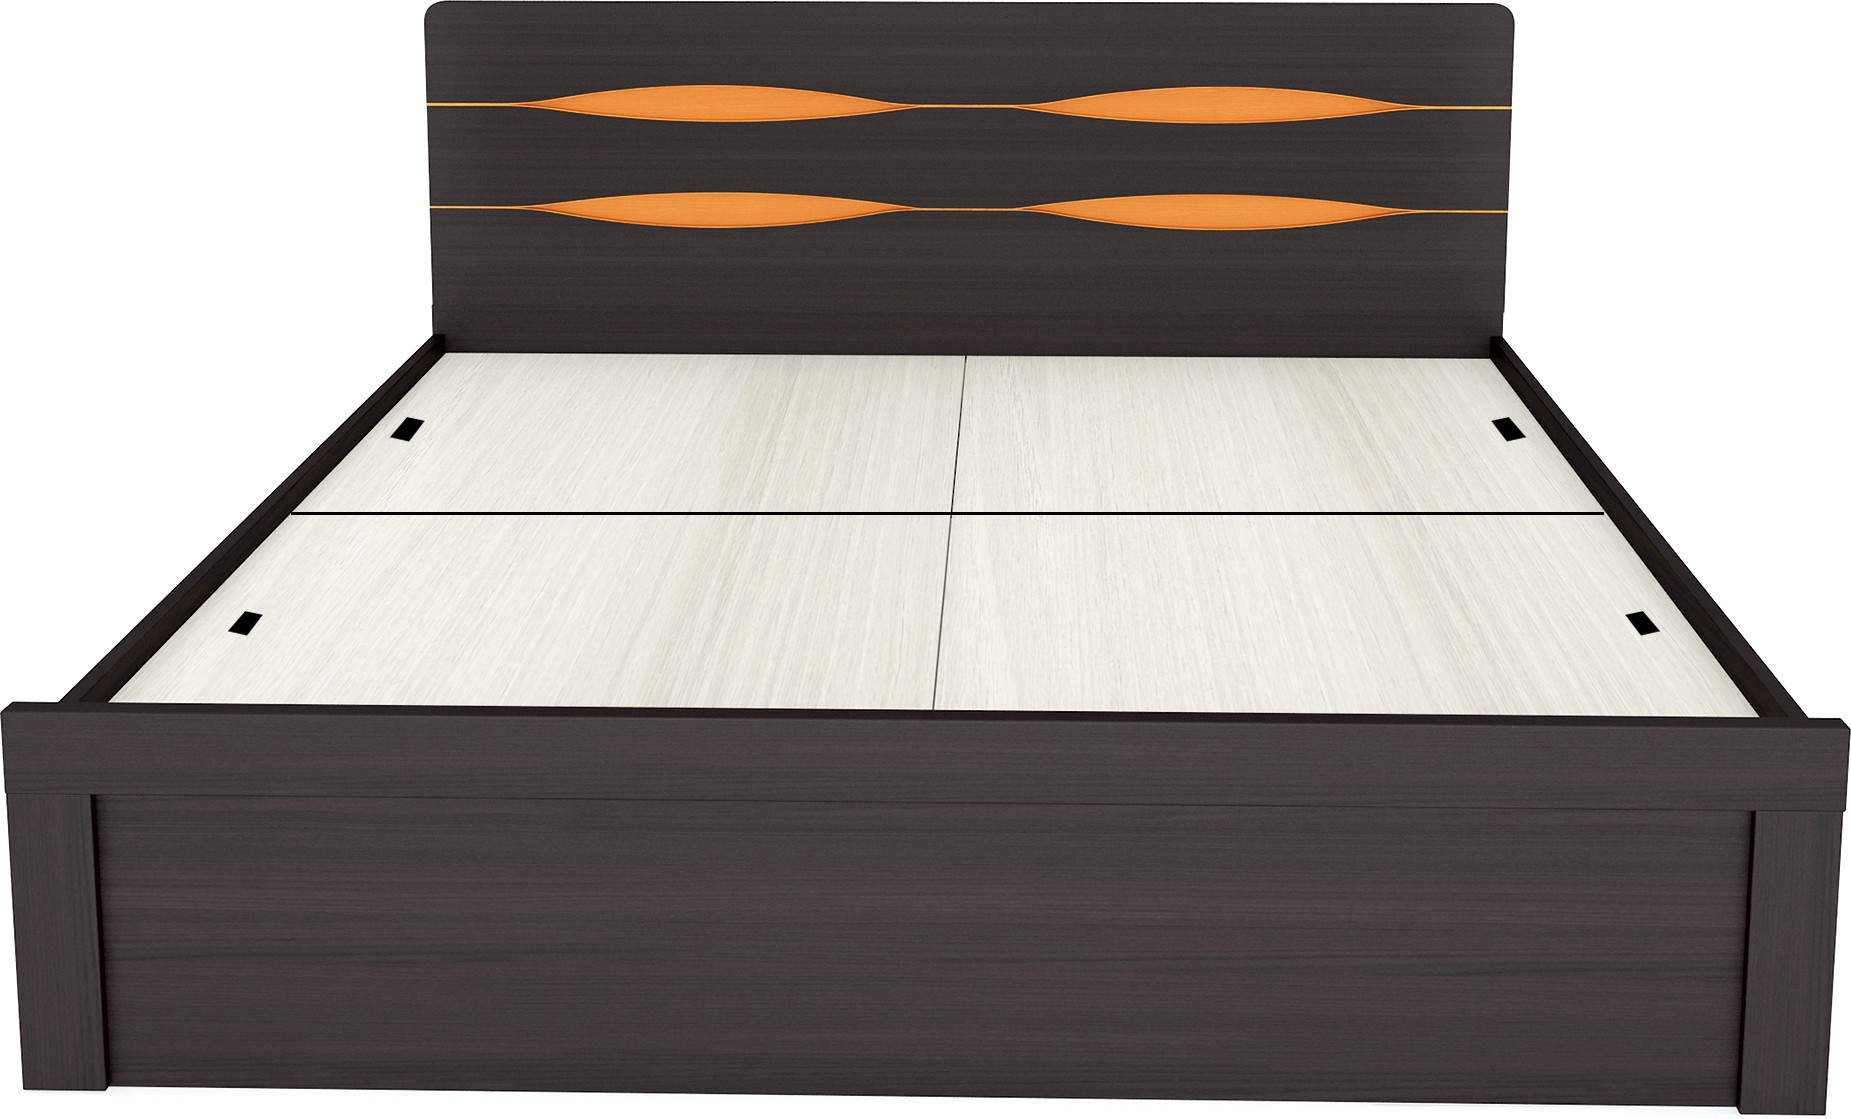 View UNiCOS Engineered Wood King Bed With Storage(Finish Color -  Brown Orange) Furniture (UNiCOS)